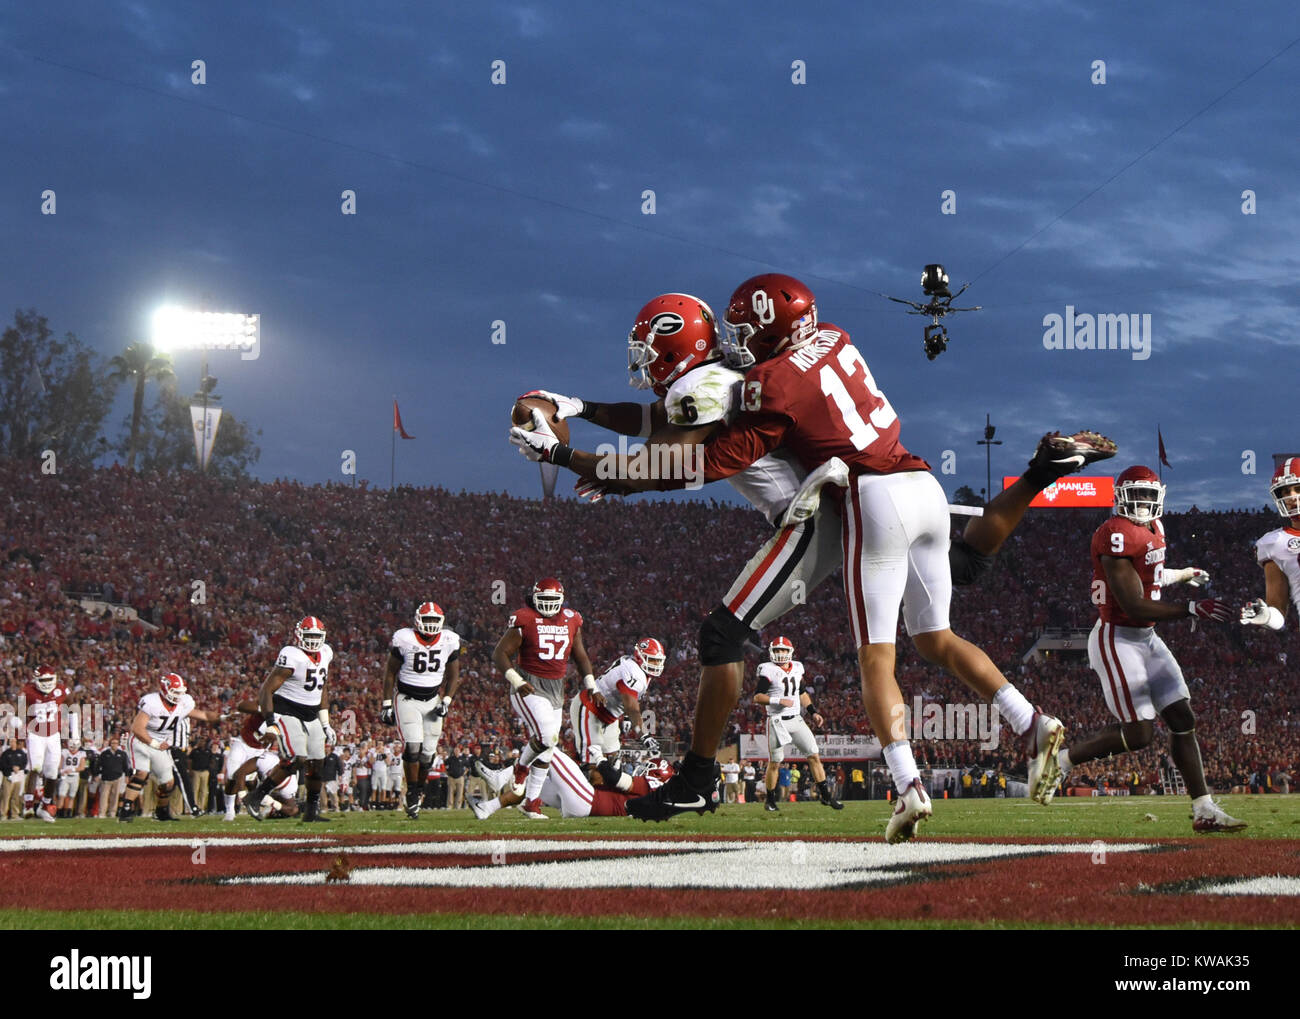 Pasadena, California, USA. 01st Jan, 2018. Georgia Bulldogs wide receiver Javon Wims #6 catches a touchdown during Stock Photo